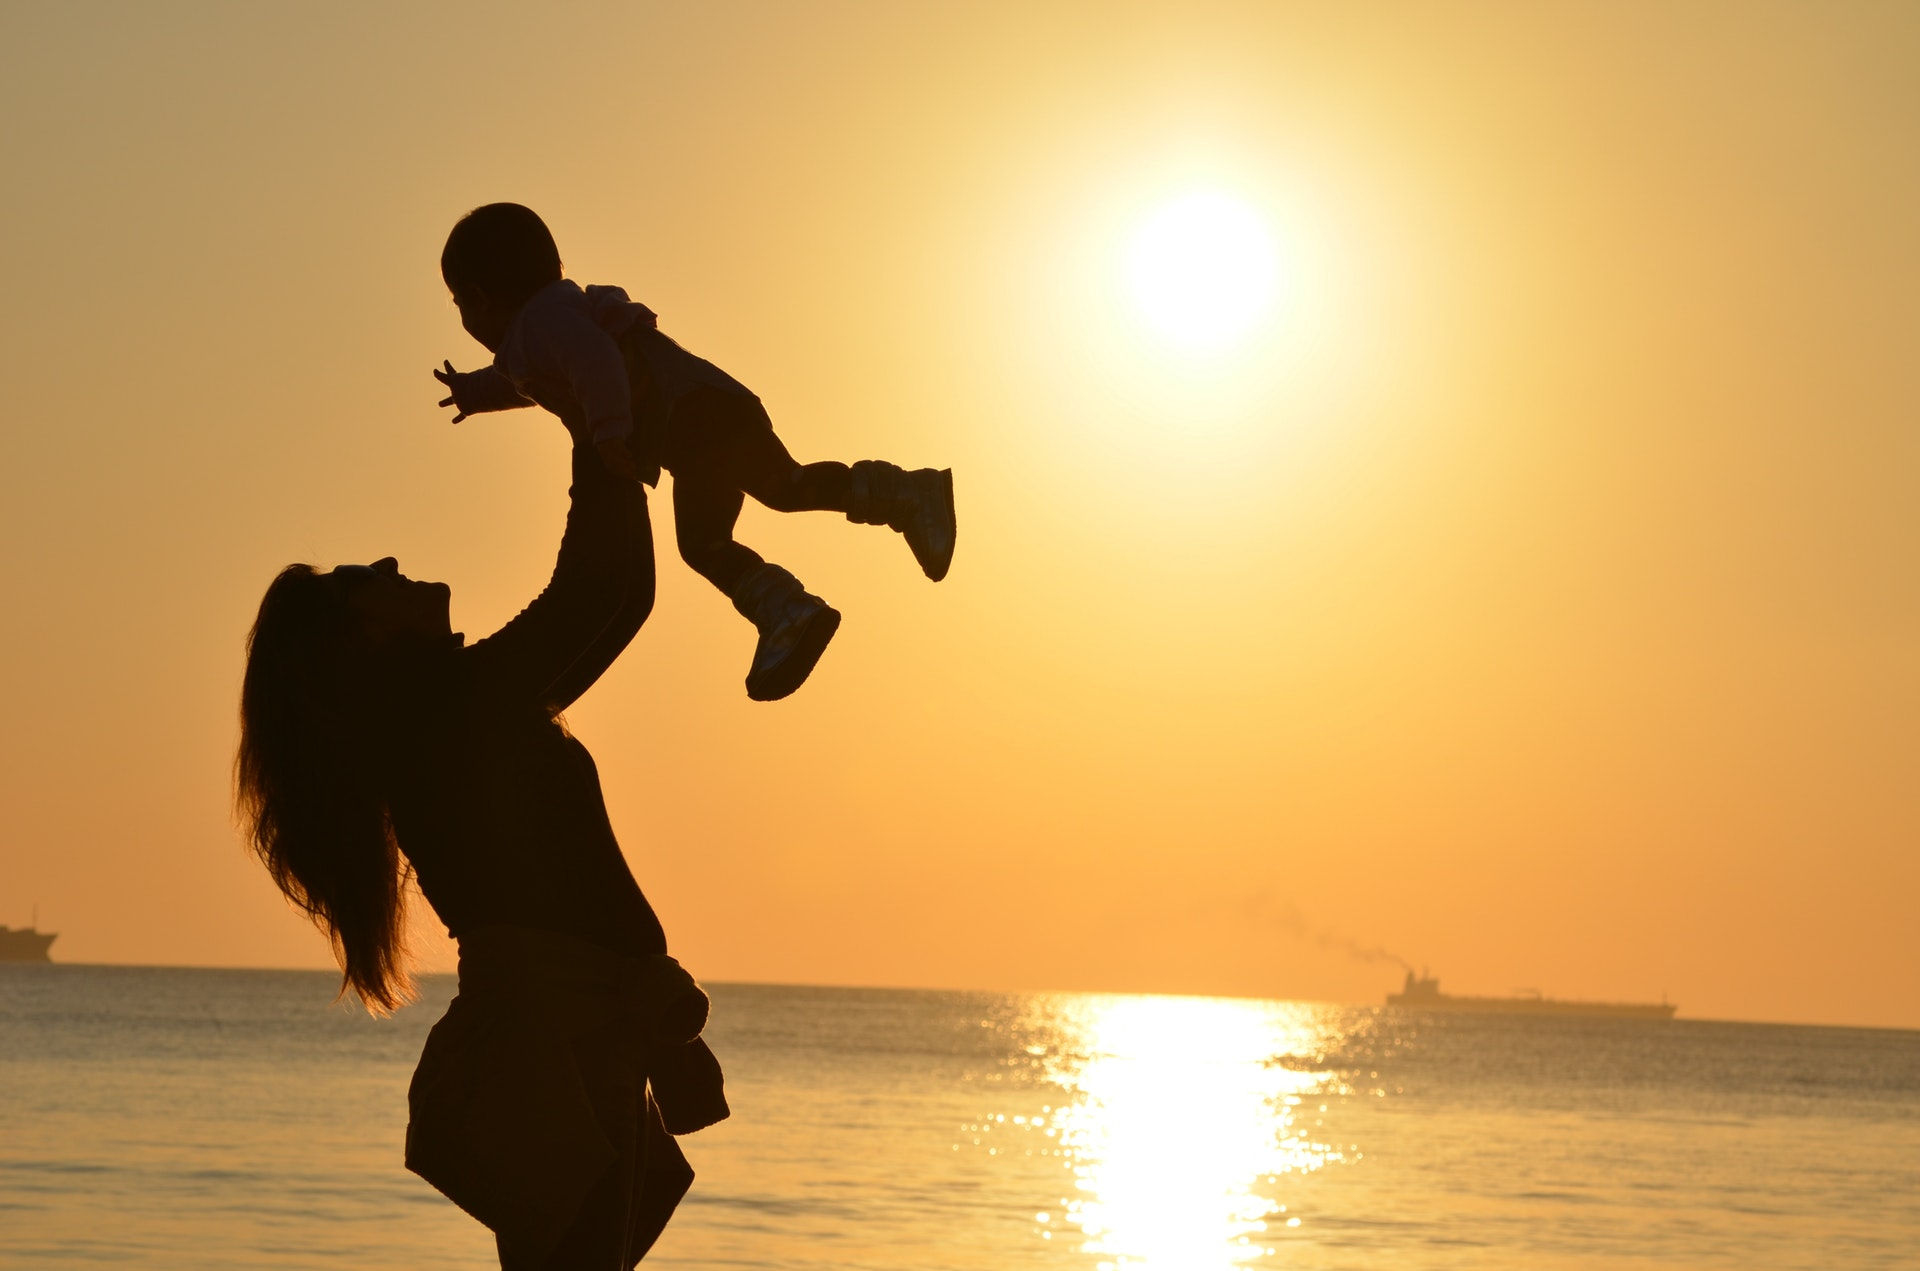 woman-carrying-baby-at-beach-during-sunset-51953.jpg